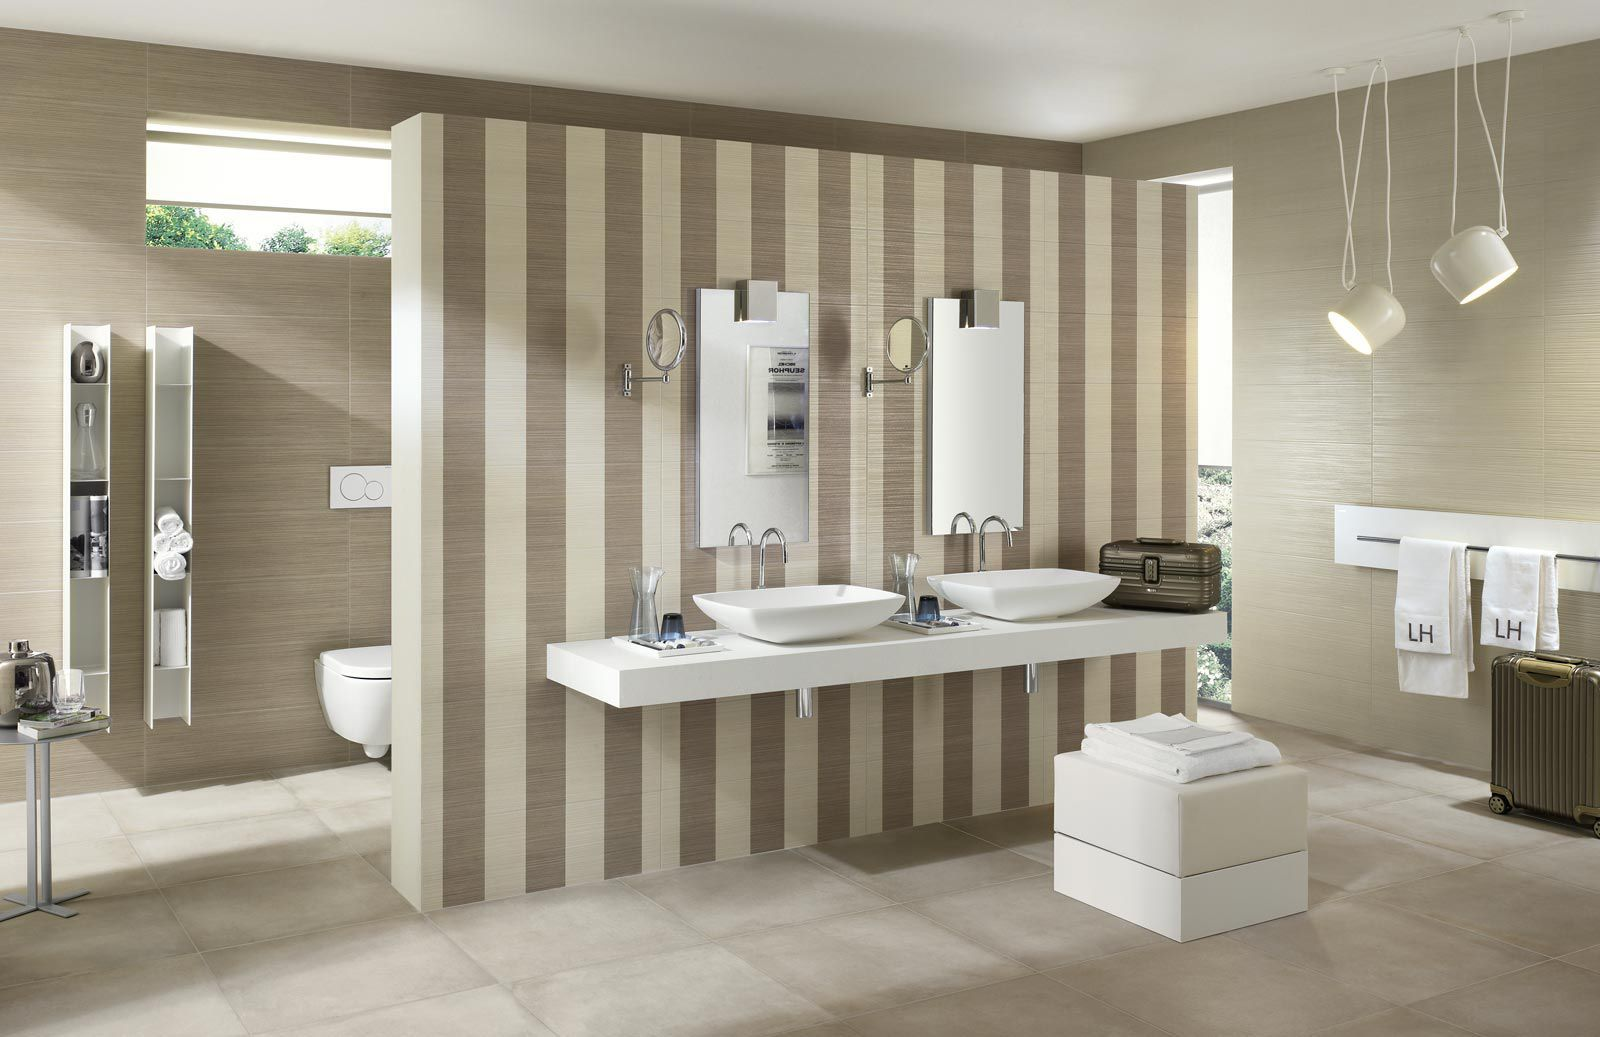 Bathroom Tile Wall Ceramic Striped Wallpaper Ragno